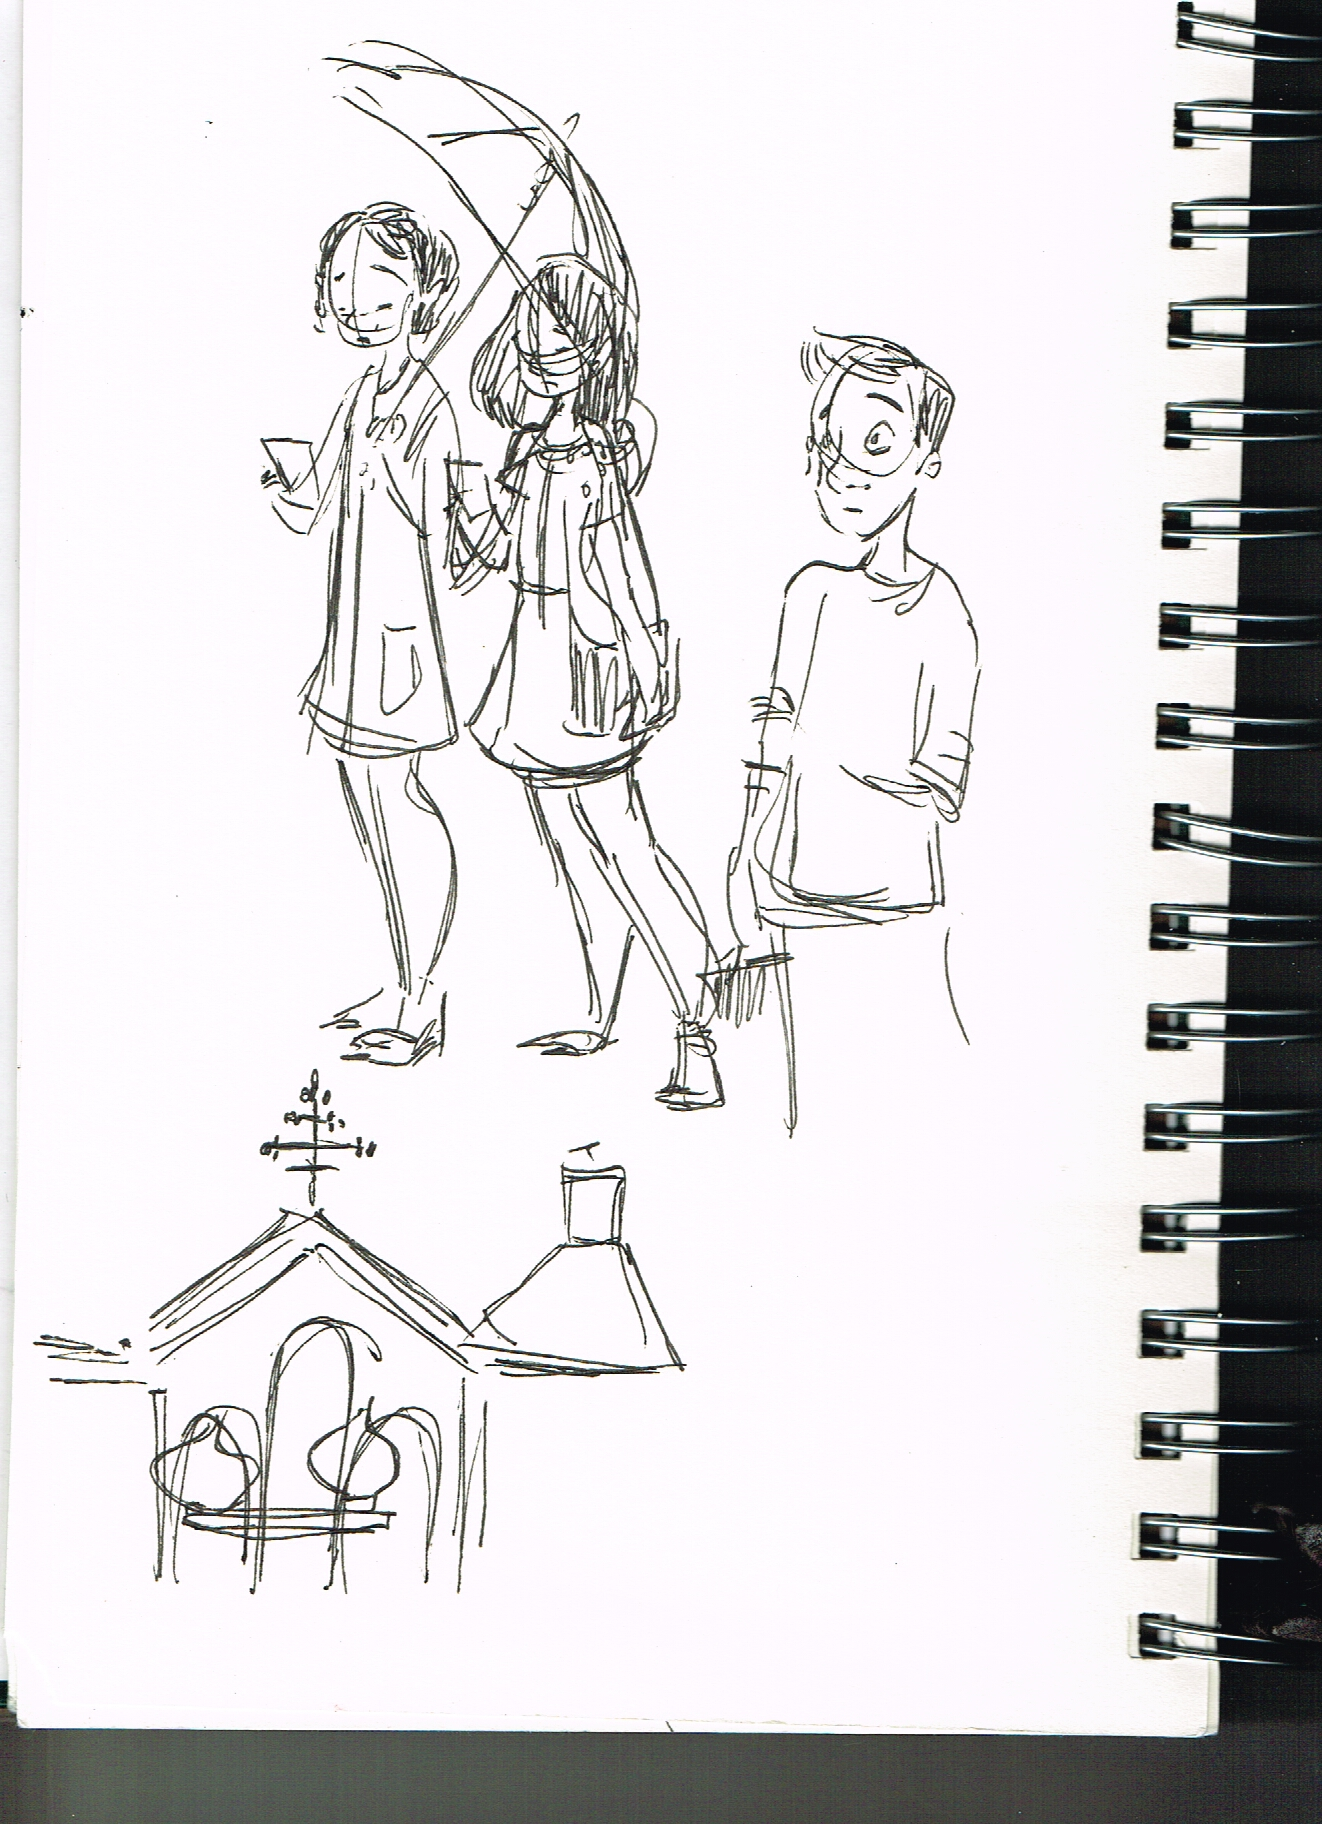 vacation_sketchbook_013.jpg